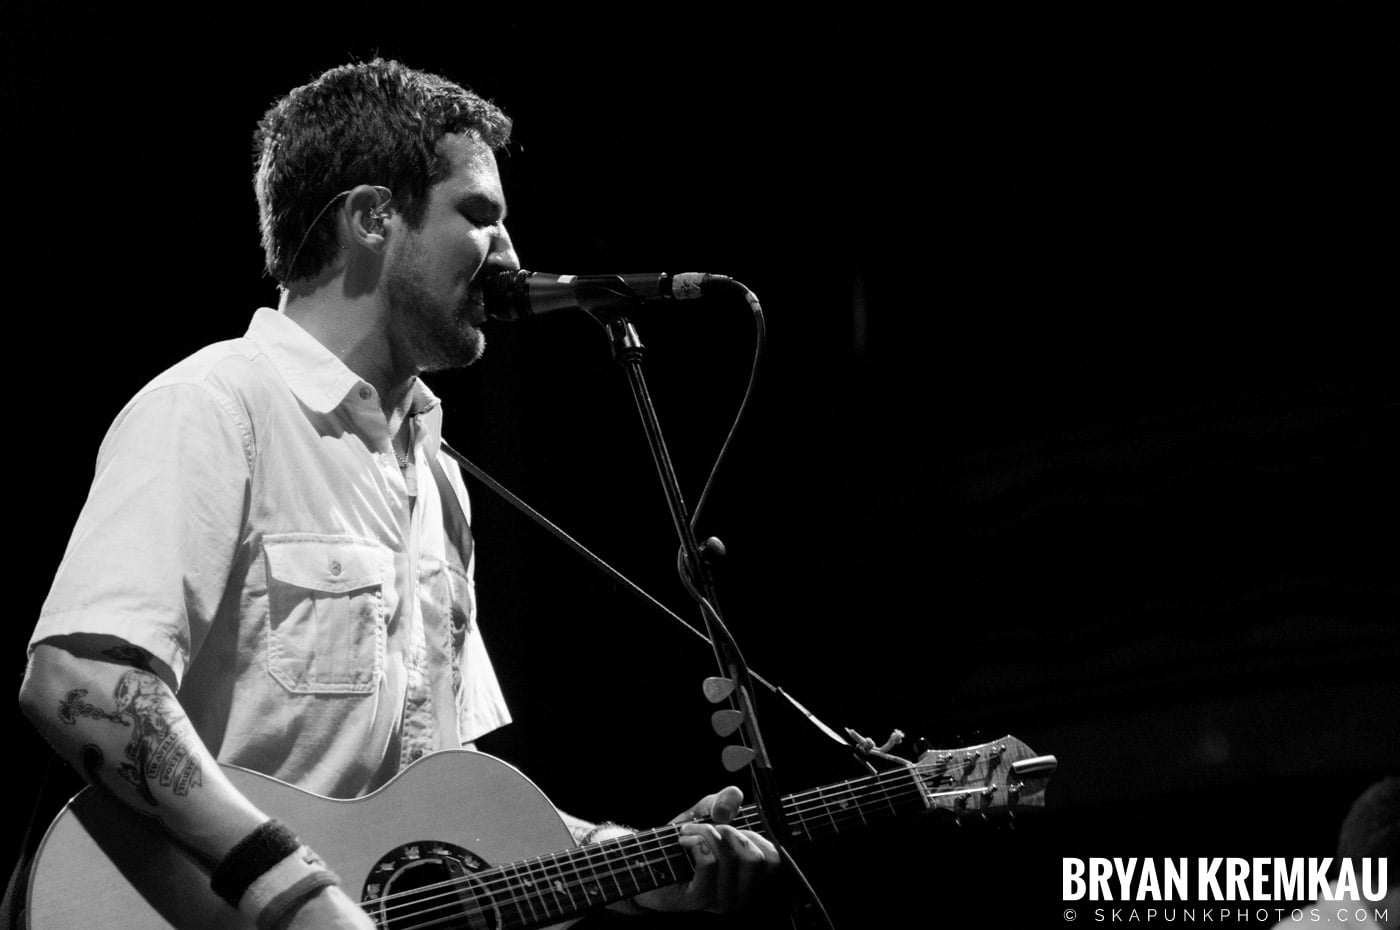 Frank Turner & The Sleeping Souls @ Webster Hall, NYC - 9.29.12 (12)